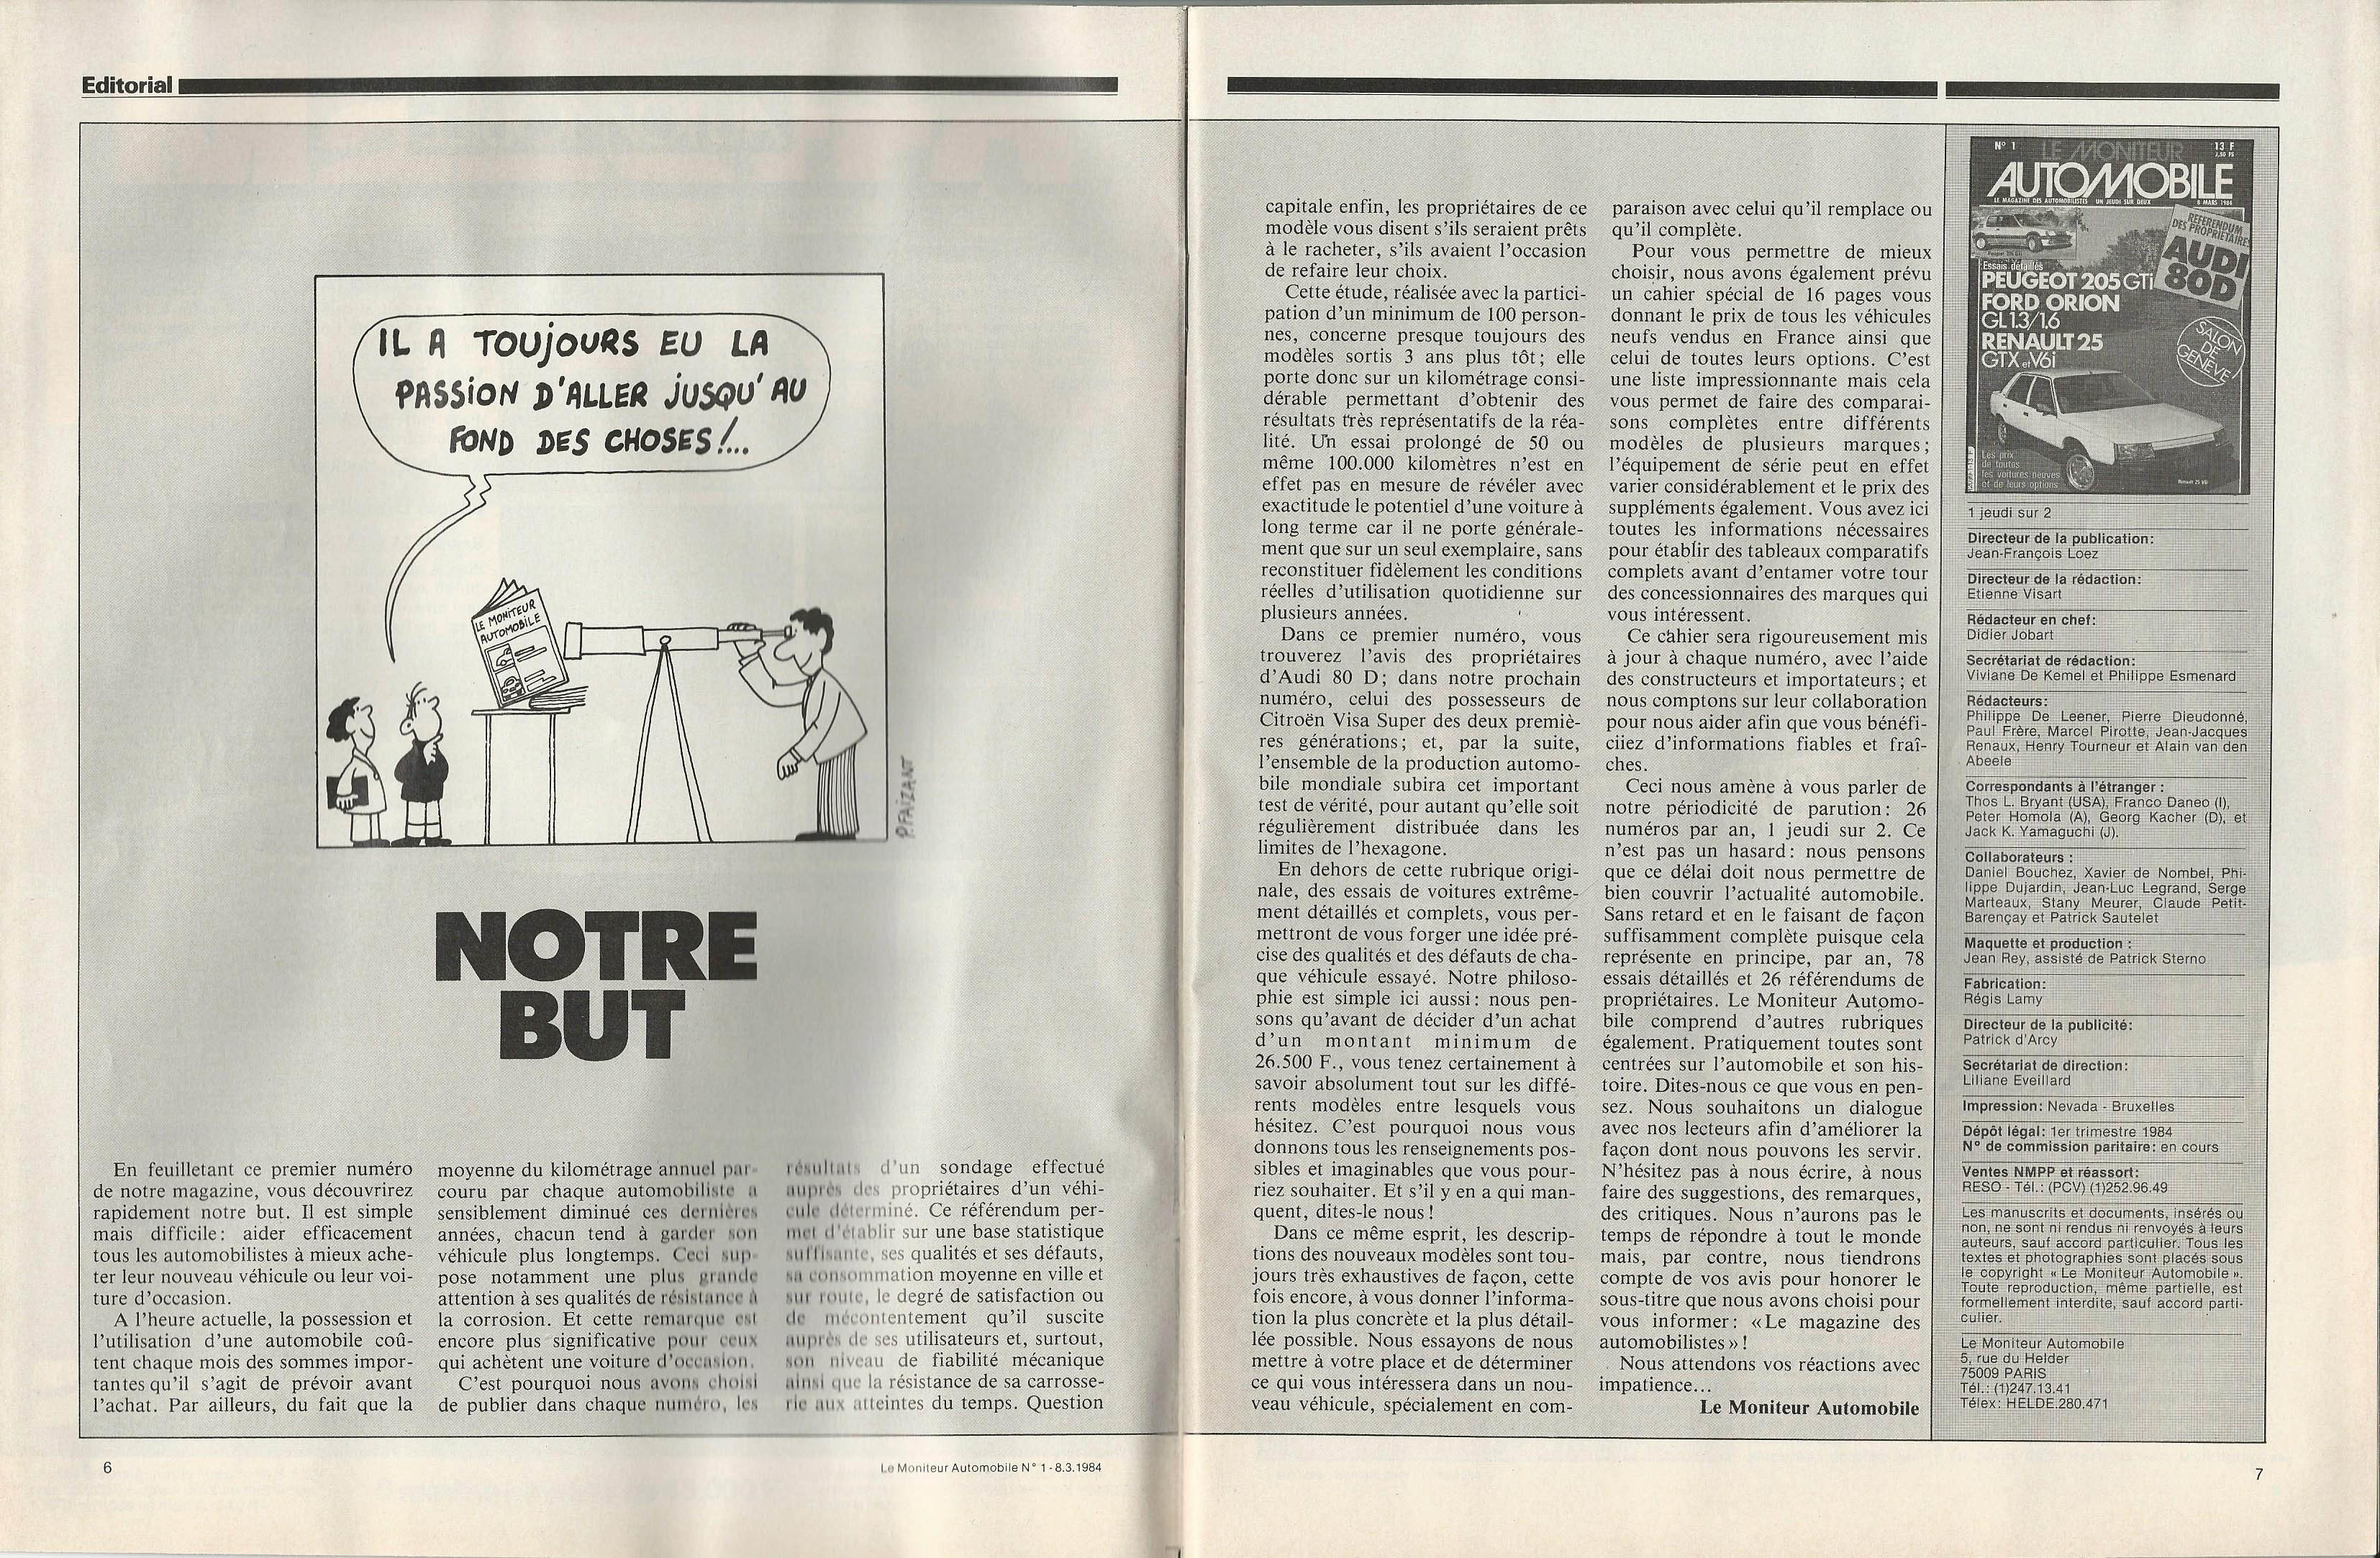 Moniteur Automobile 01 - 08 Mars 1984 (4)